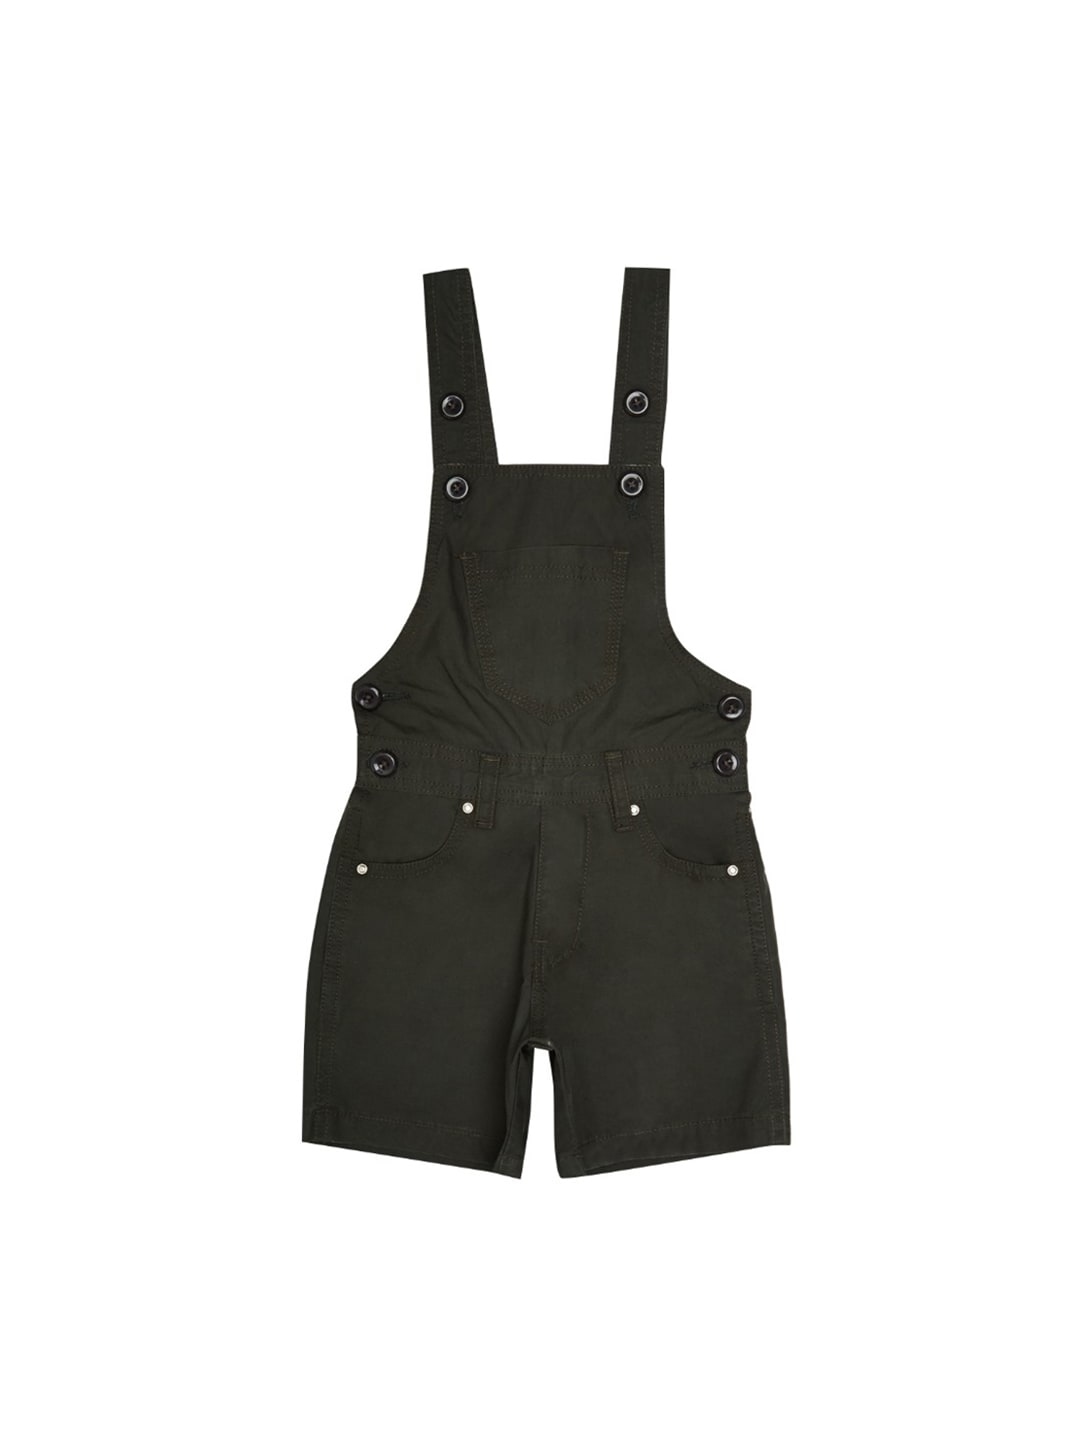 9d76318c1b5 Girls Dungarees - Buy Girls Dungarees online in India